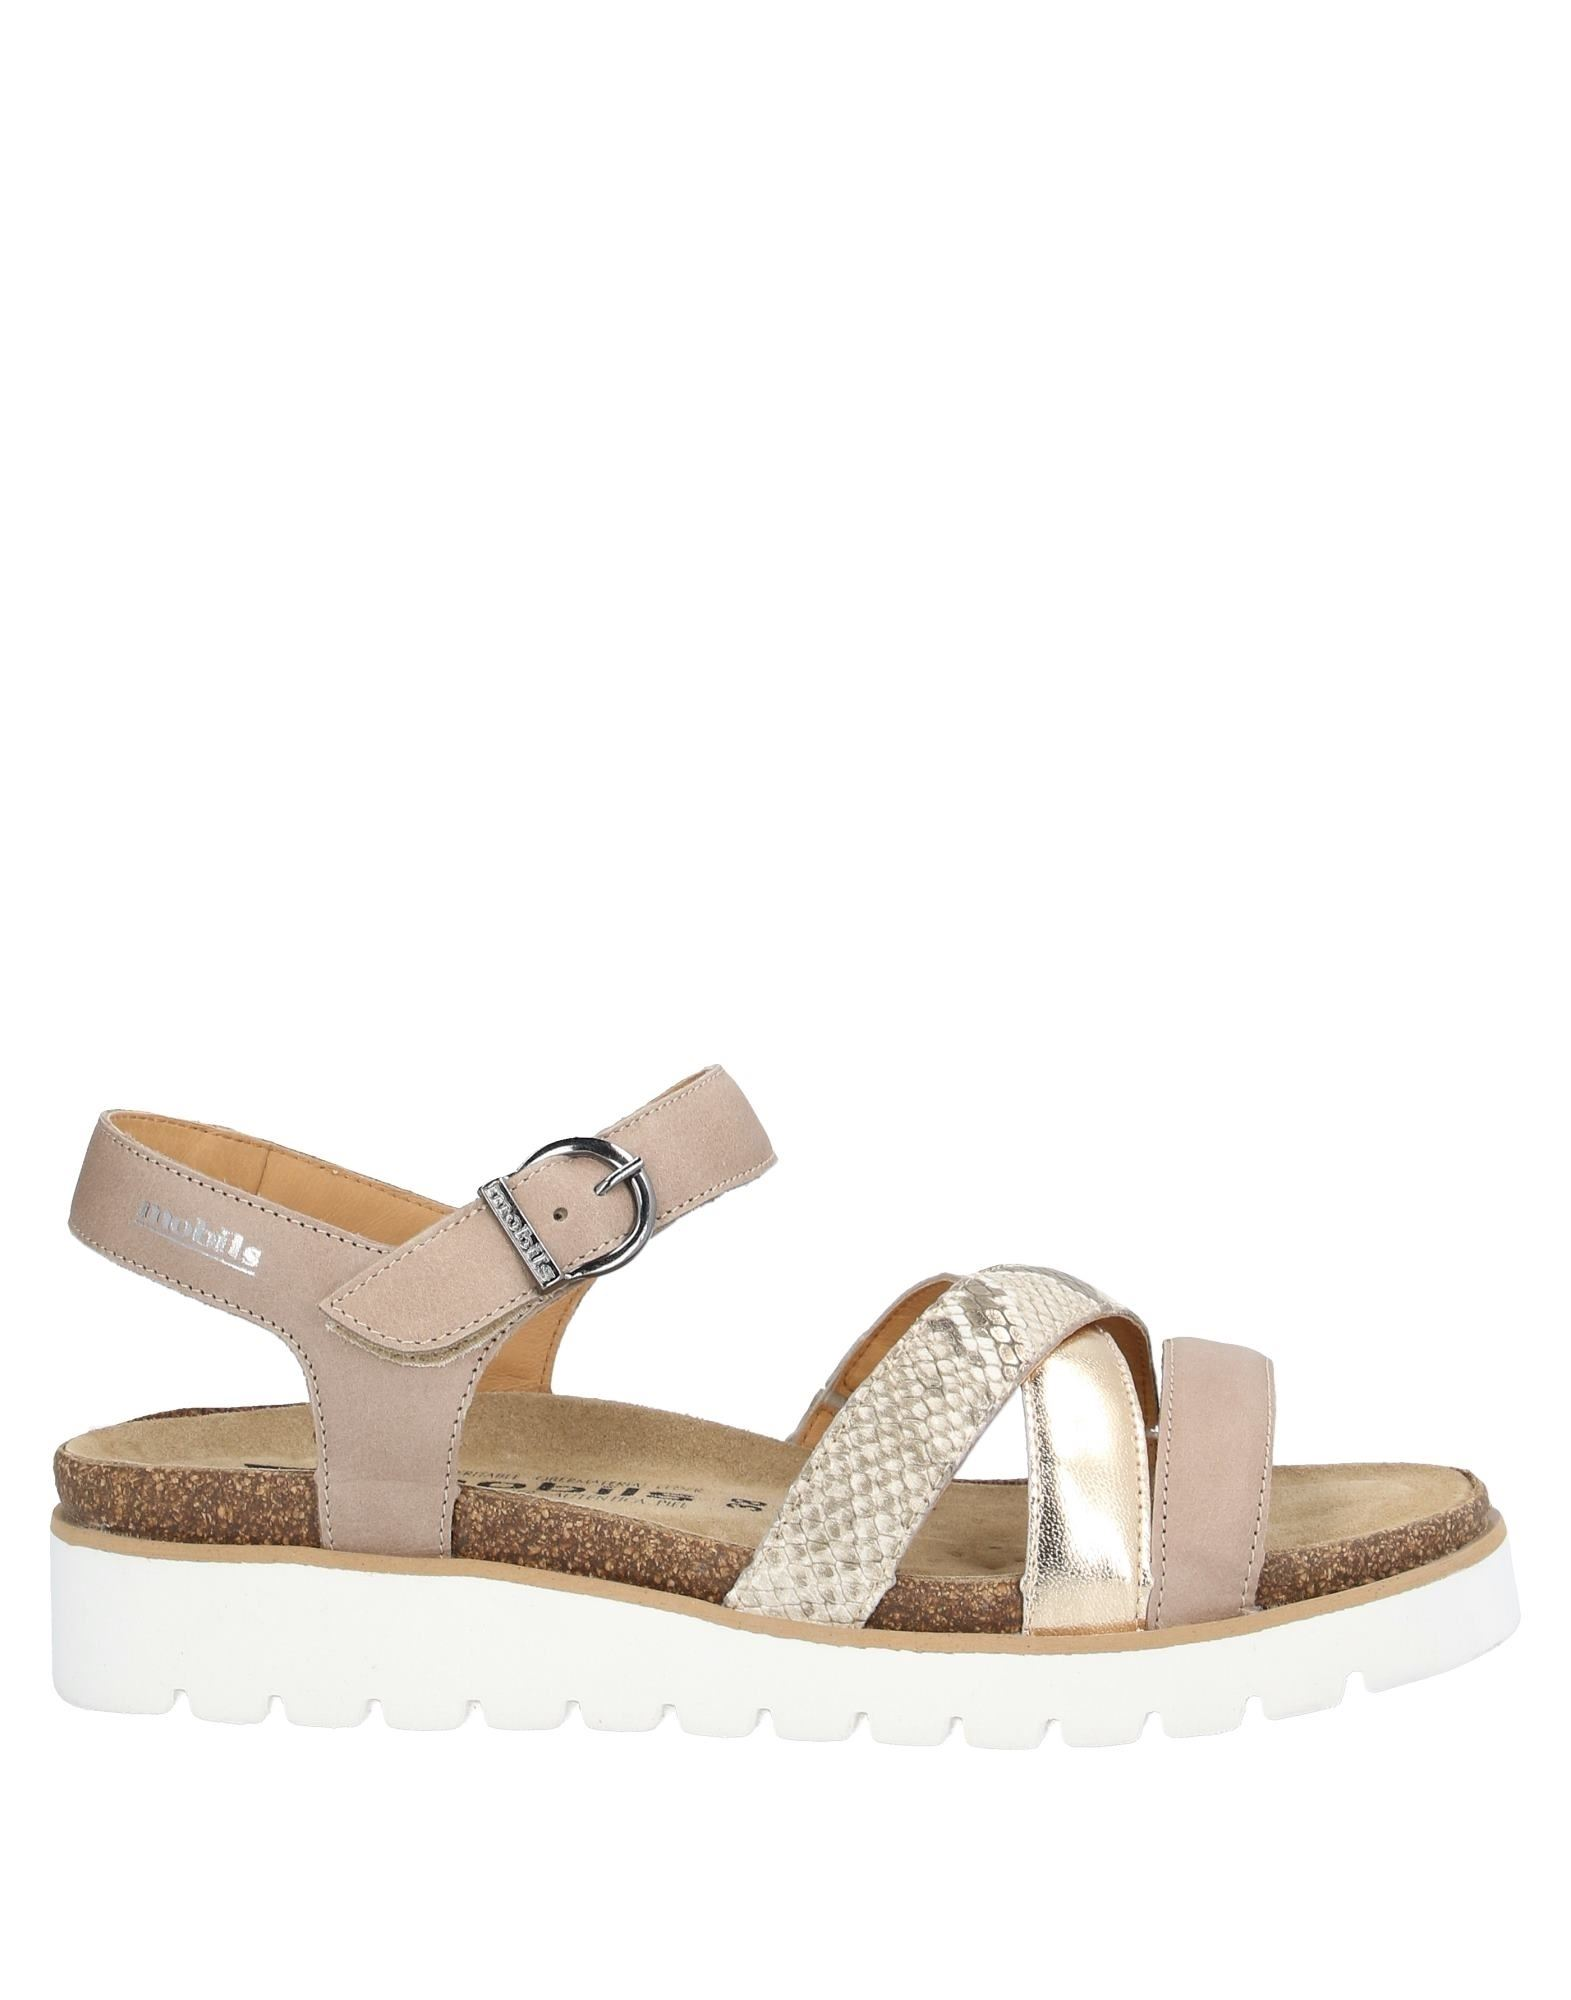 MEPHISTO Sandals. laminated effect, print, snakeskin print, multicolor pattern, wrapping straps closure, round toeline, wedge heel, leather lining, rubber sole, contains non-textile parts of animal origin. Soft Leather